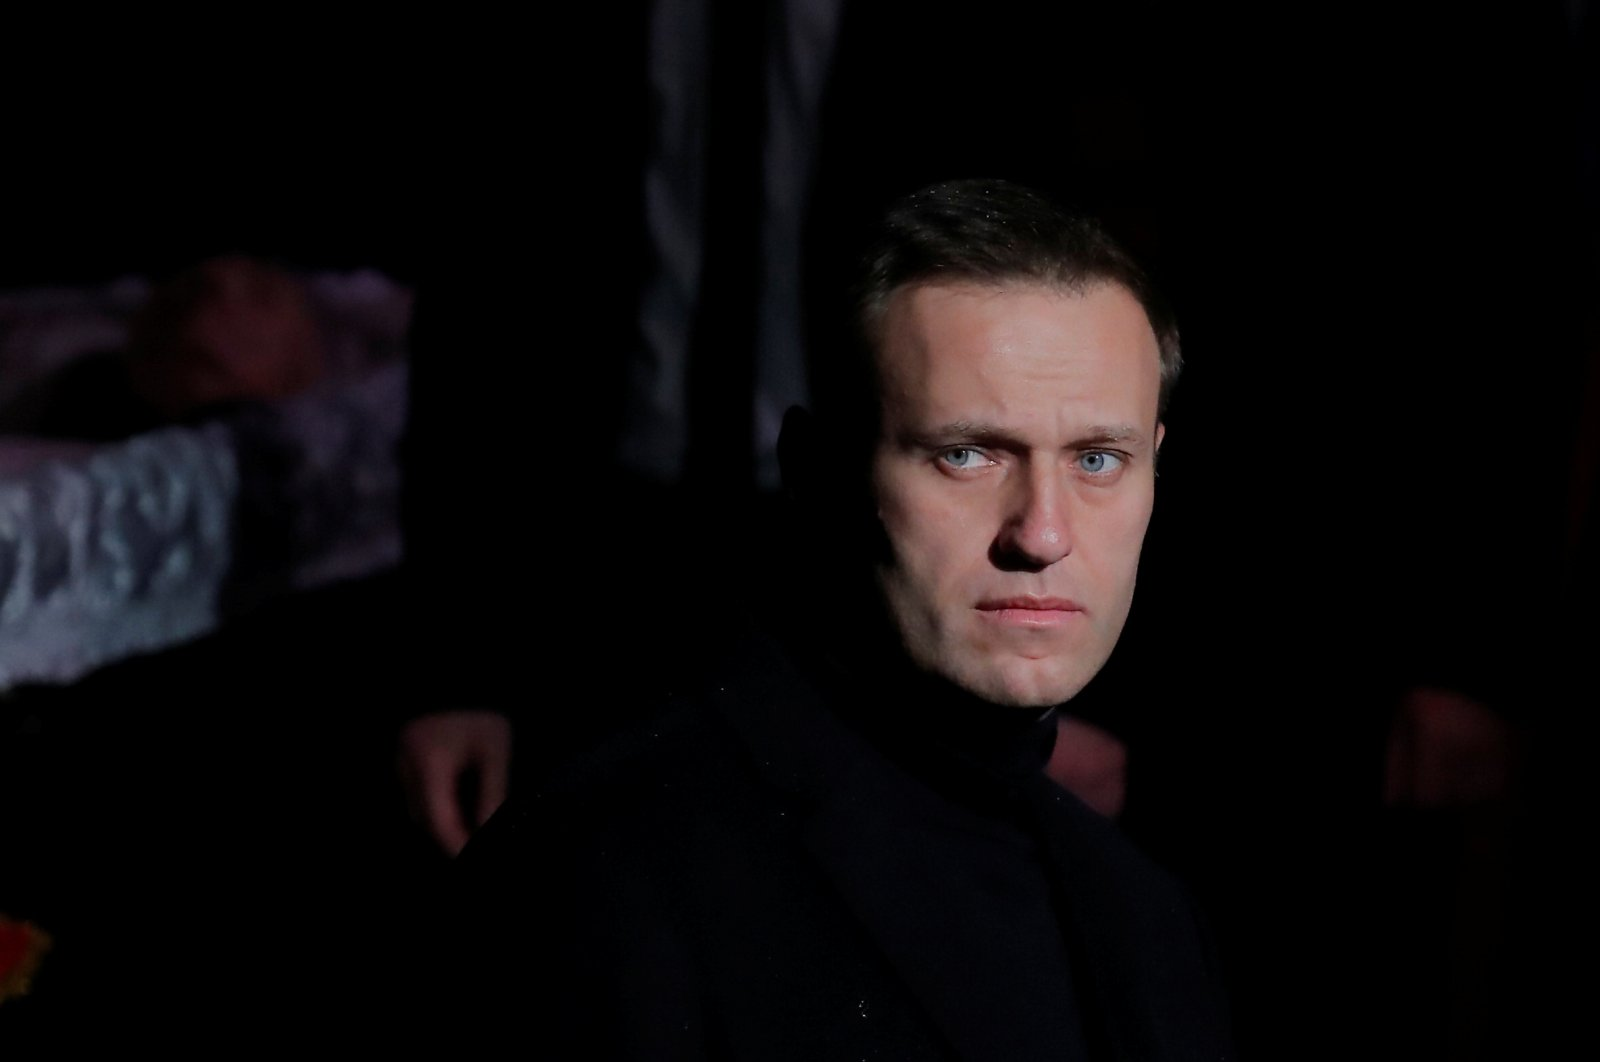 Russian opposition leader Alexei Navalny pays respect to founder of Russia's oldest human rights group and Sakharov Prize winner Lyudmila Alexeyeva in Moscow, Russia, Dec. 11, 2018. (Reuters Photo)